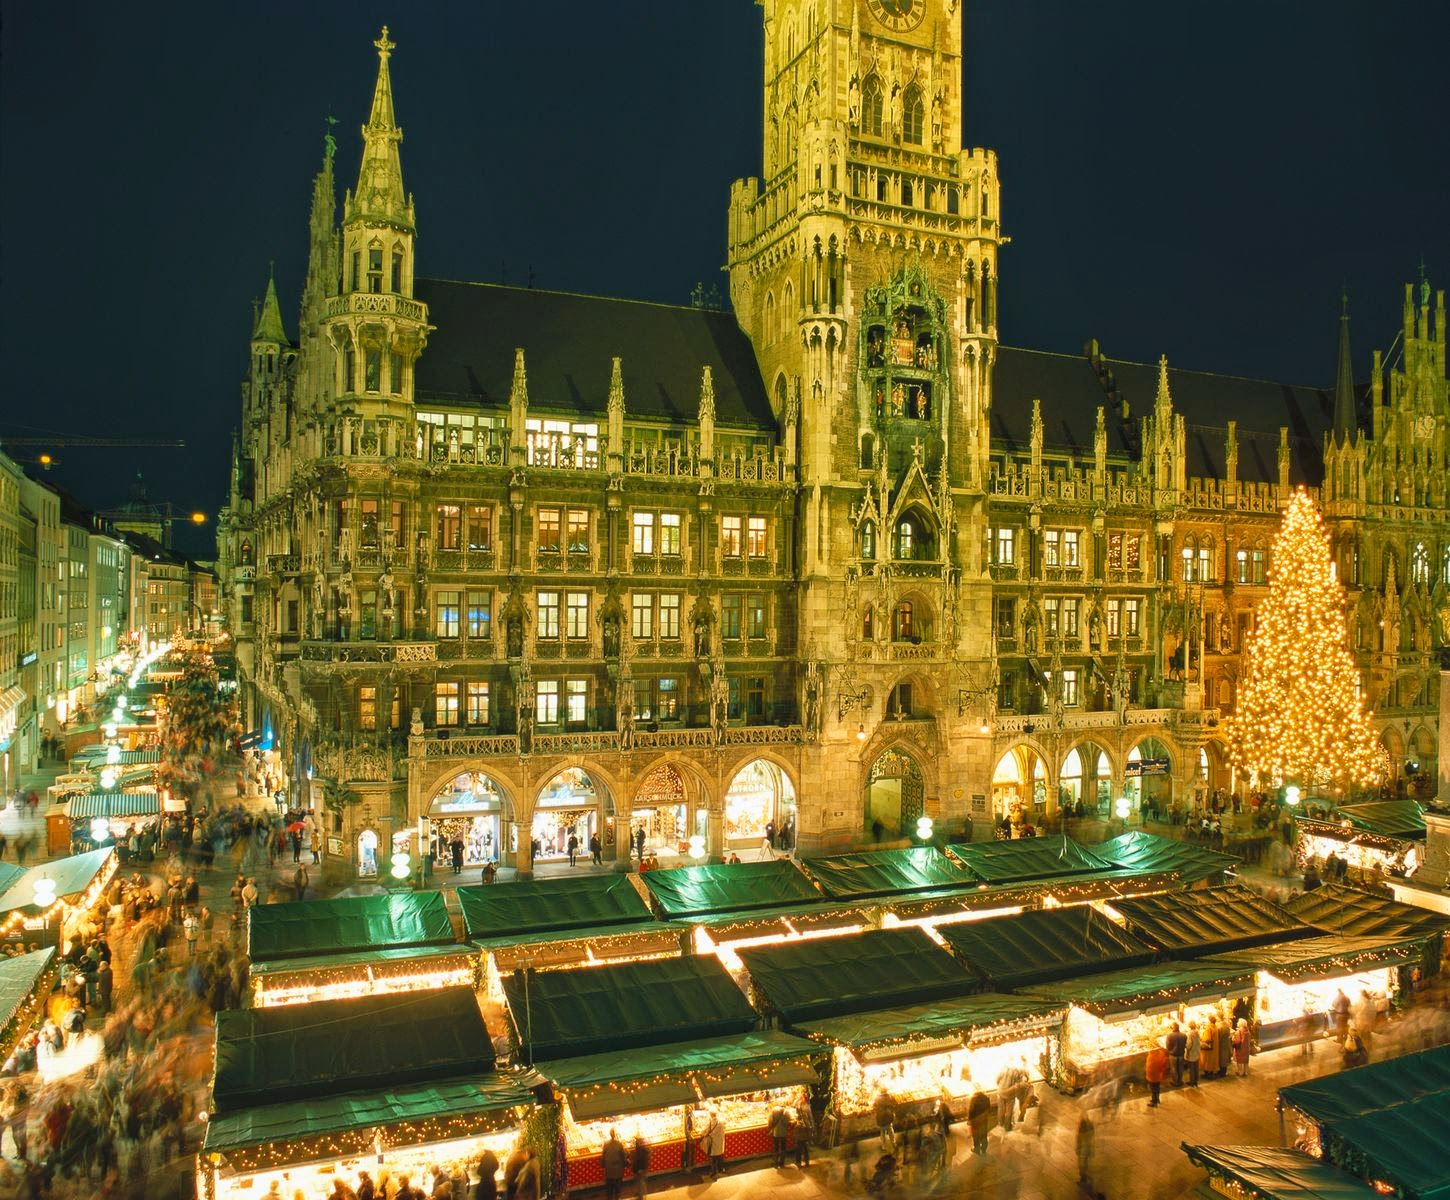 A Vacation to German Christmas Markets or Deutsch Christkindlmarkts